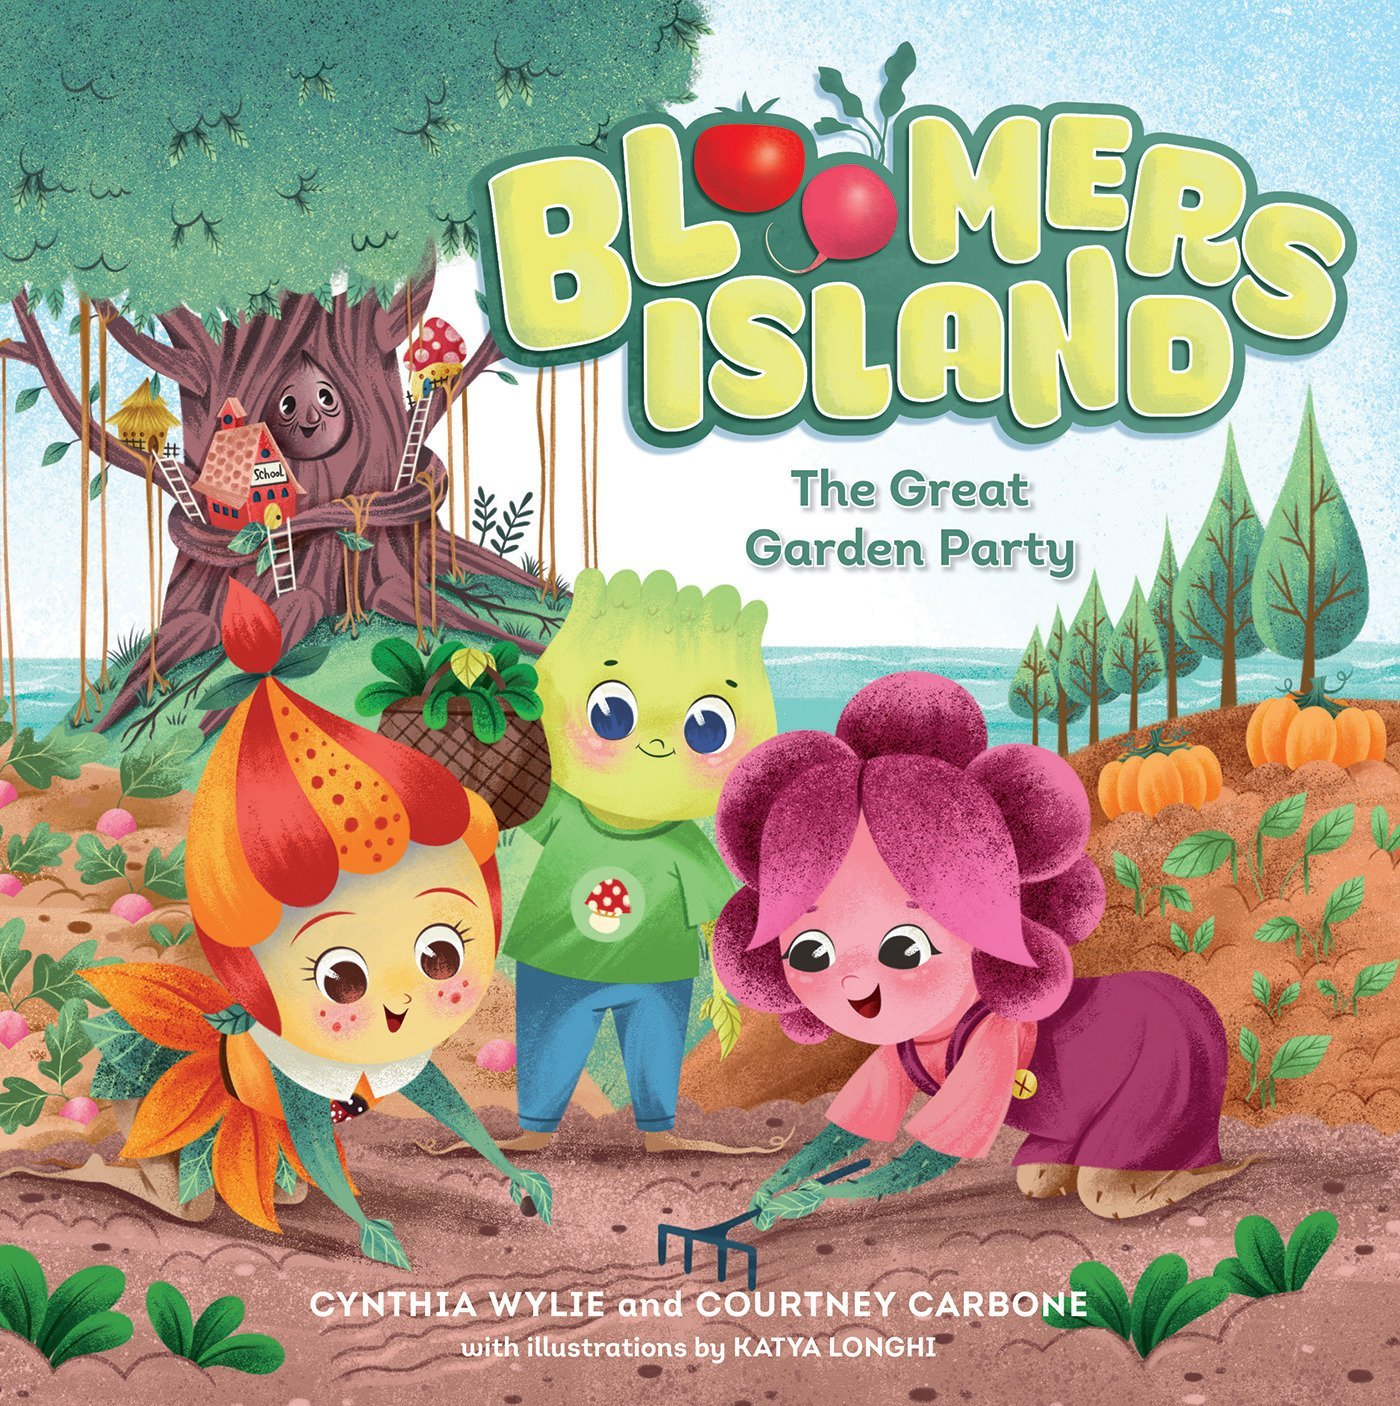 The Great Garden Party (Bloomers Island)